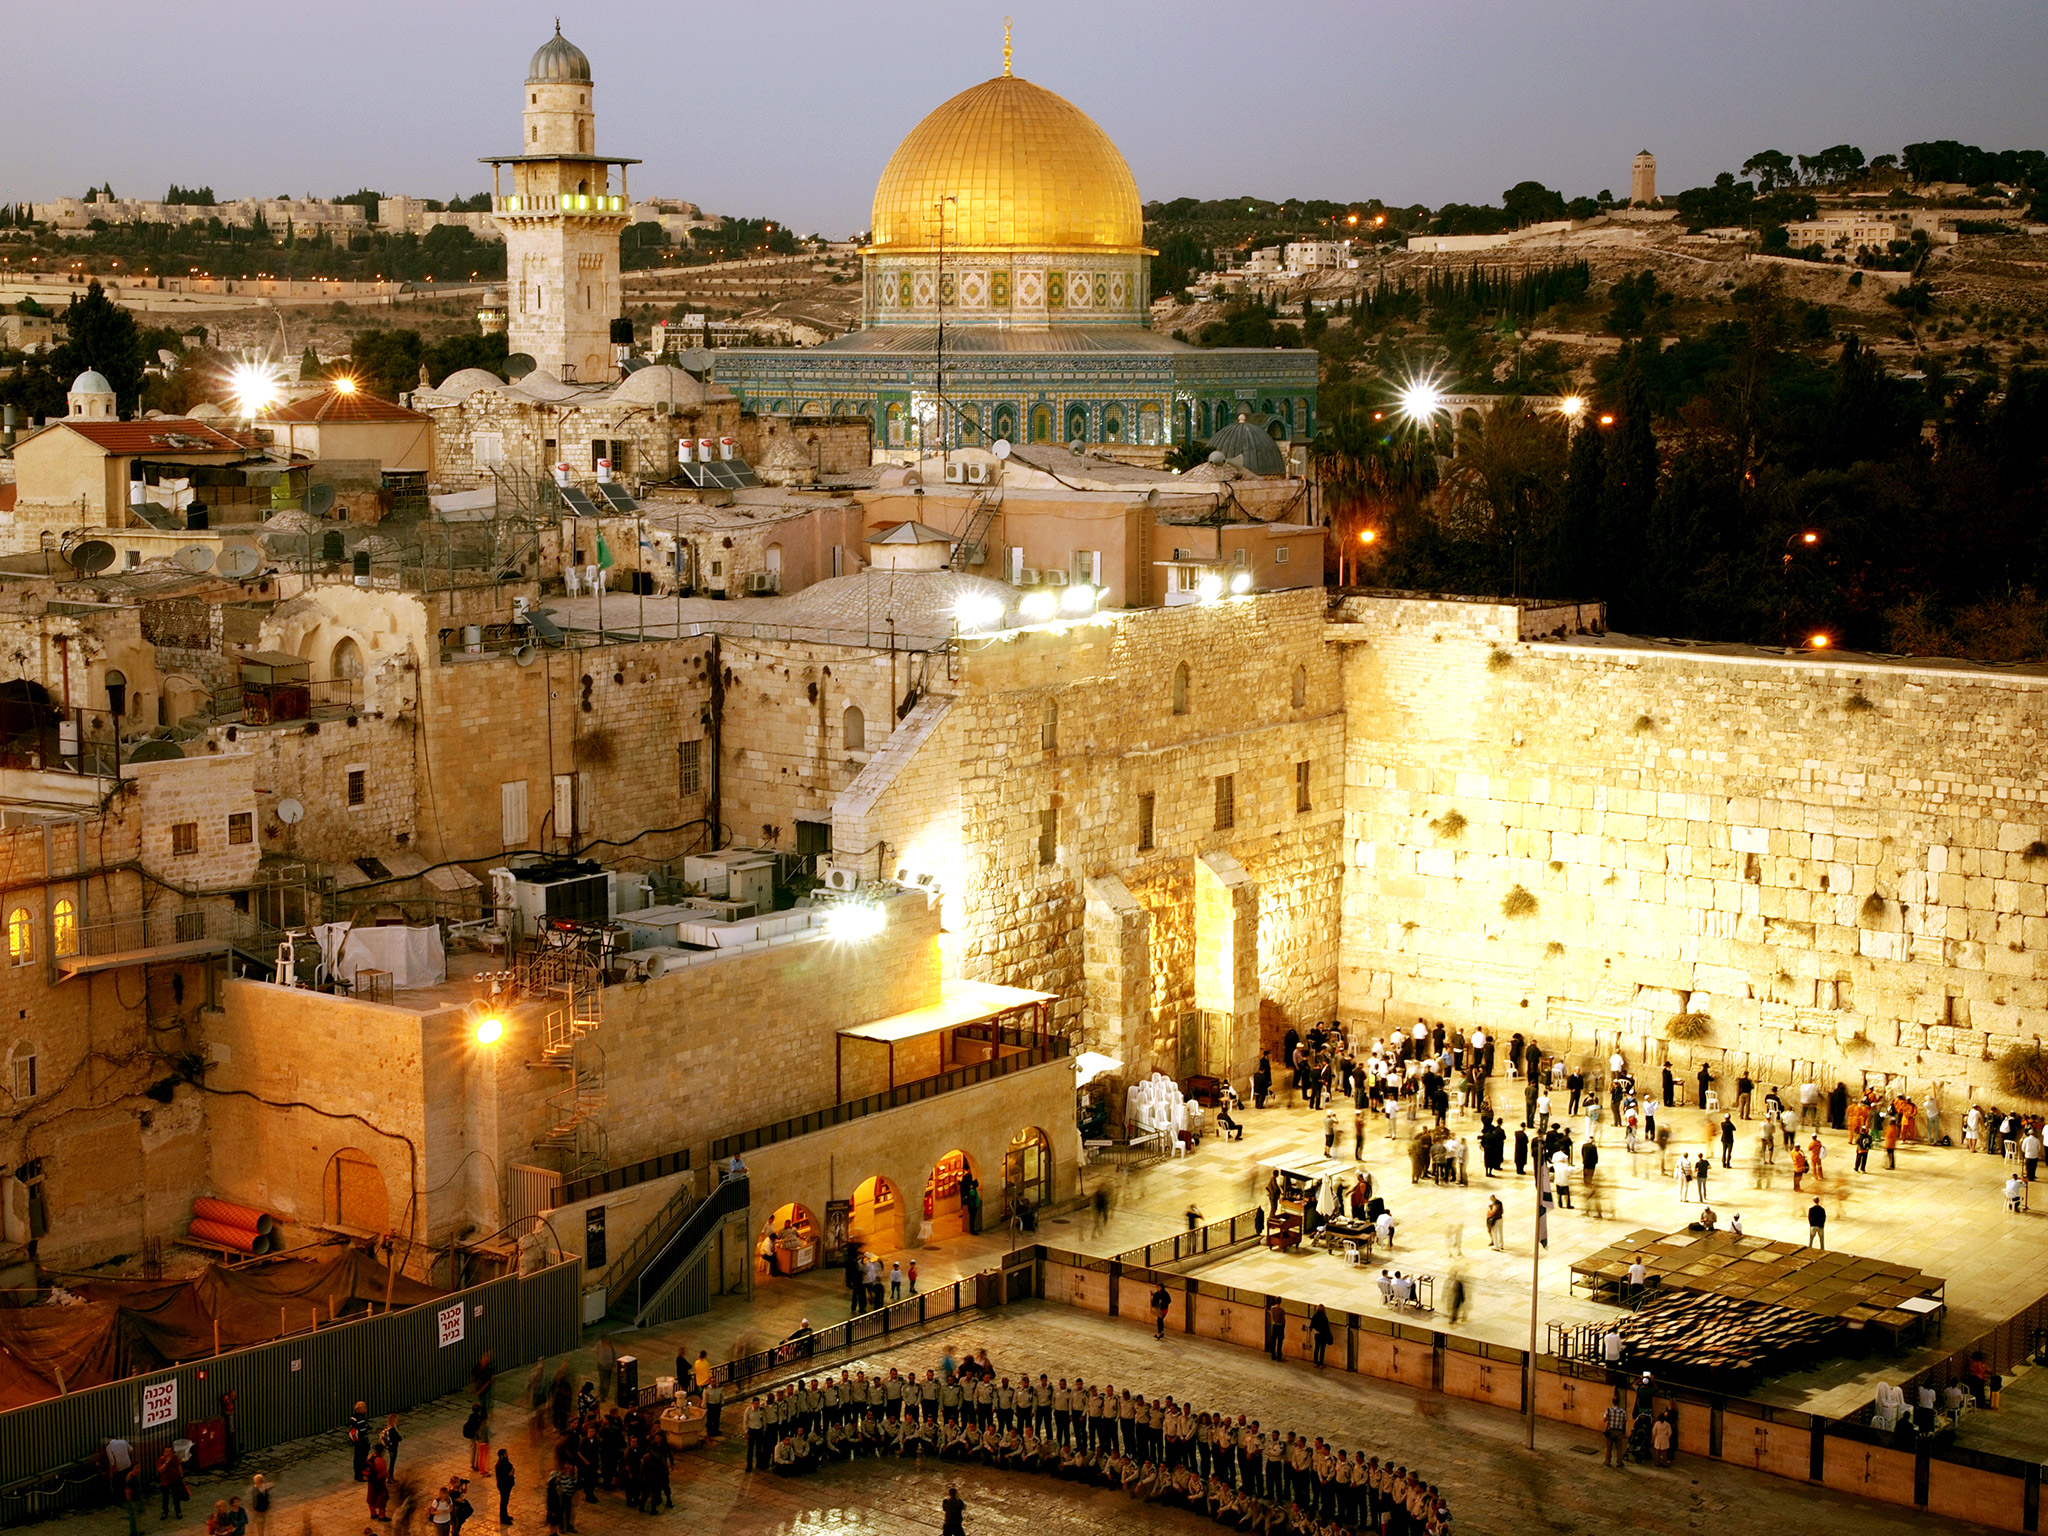 dome-of-the-rock-western-wall-jerusalem-israel-lead.jpg